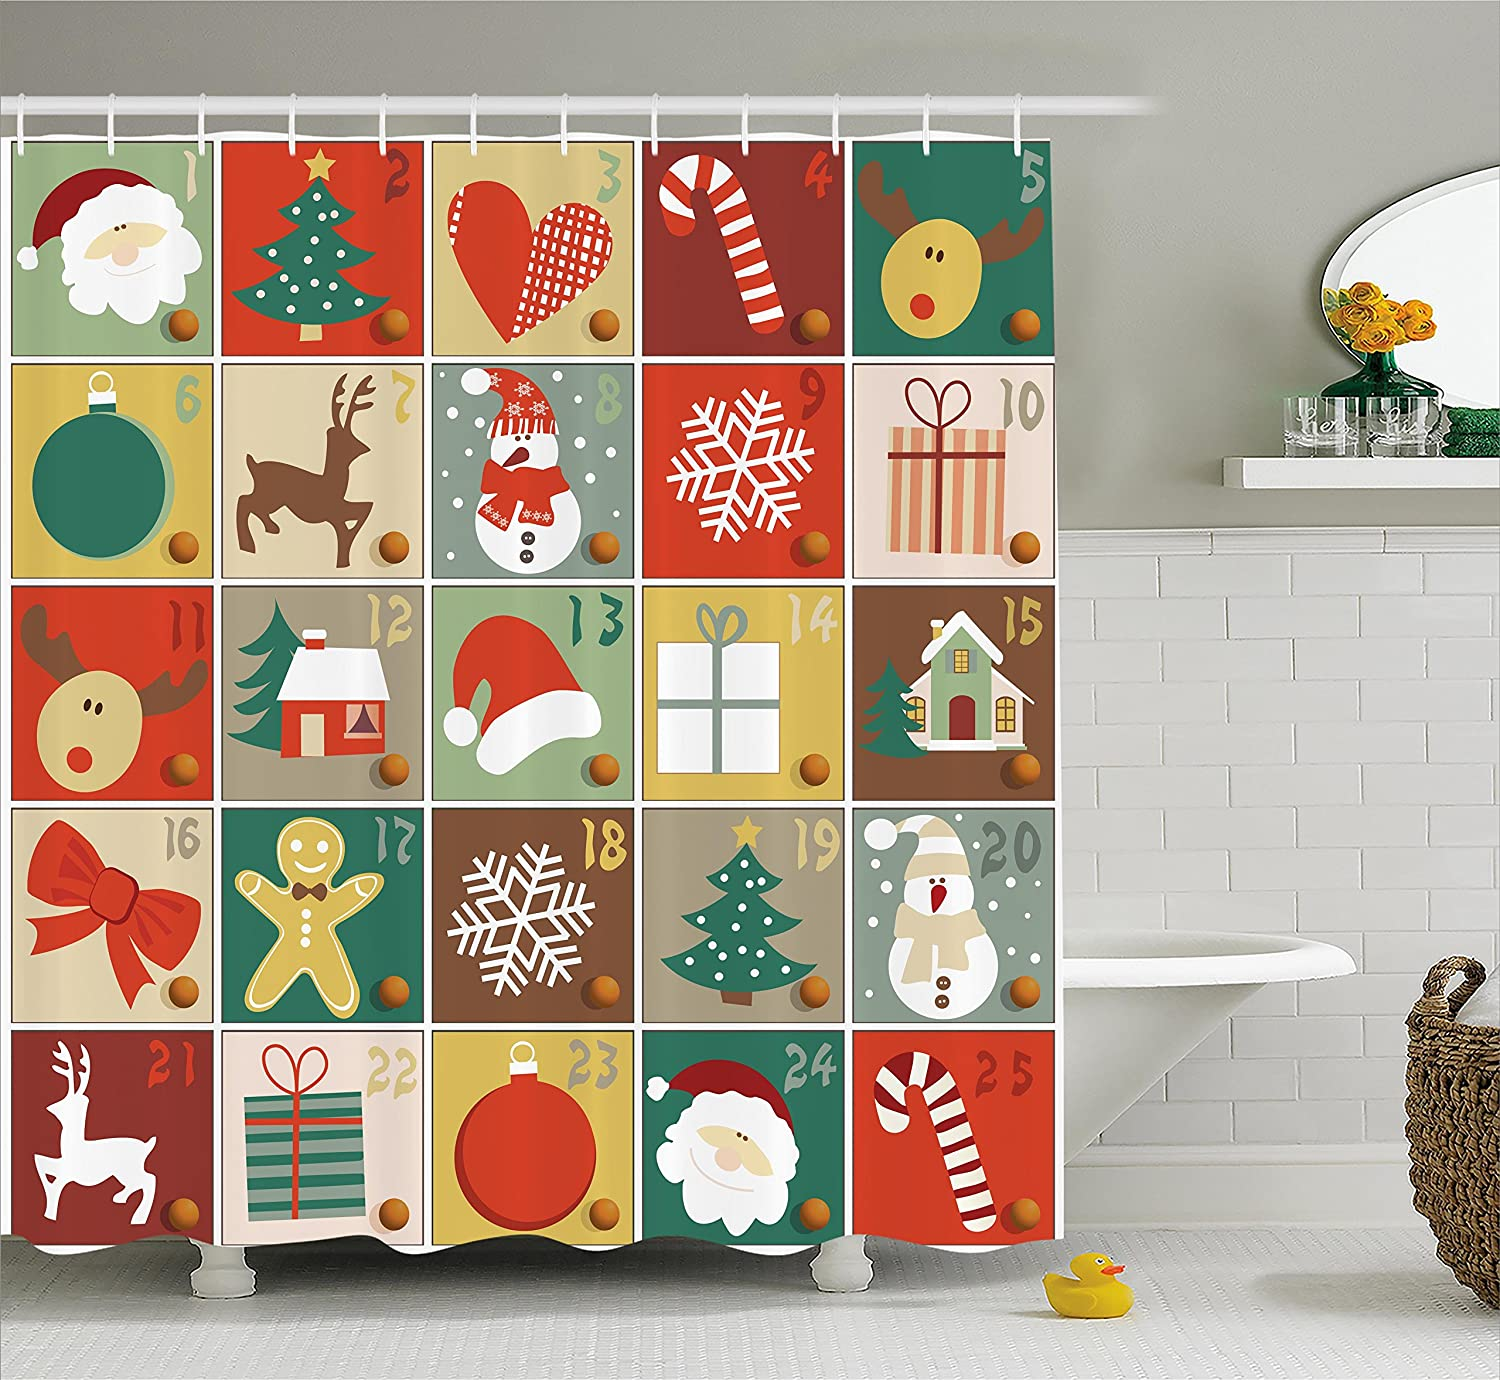 Ambesonne Christmas Shower Curtain Funny Christmas Bathroom Decorations by, Holiday Season Patterns with Santa Rudolf The Reindeer Gingerbread Man Candy Cane Snowflakes Snowman Xmas Tree, Multi